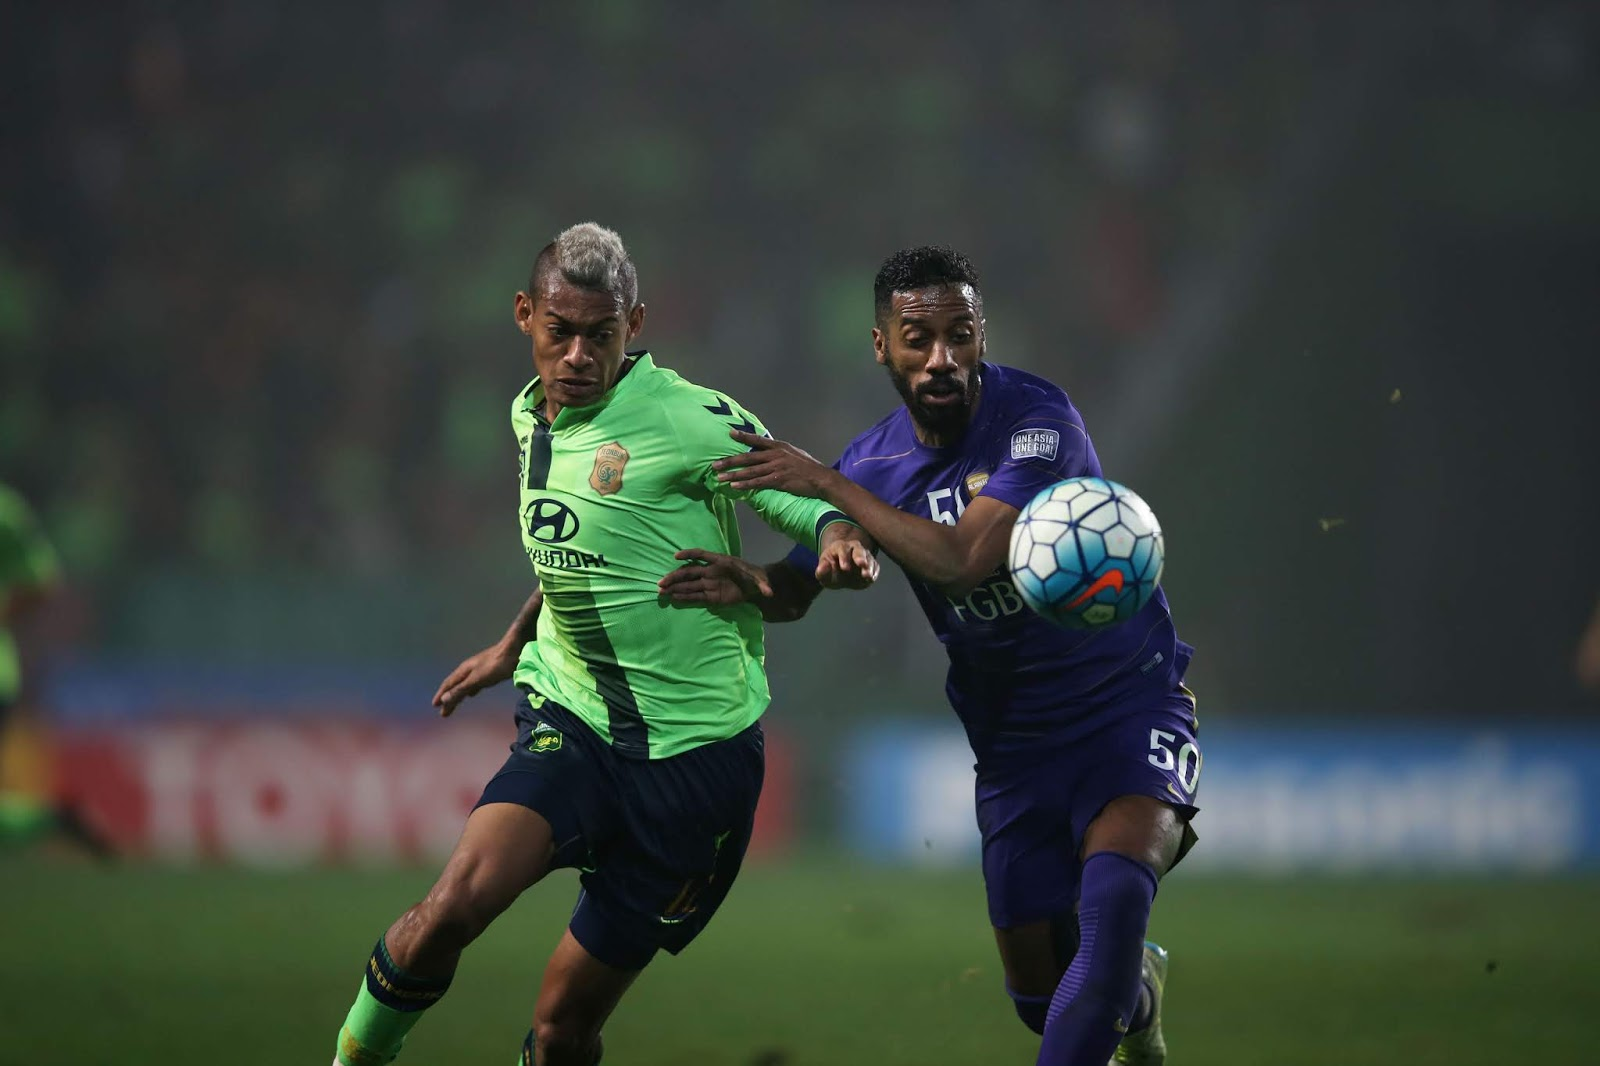 Ricardo Lopes in action against Al Ain in the AFC Champions League Final 2016.